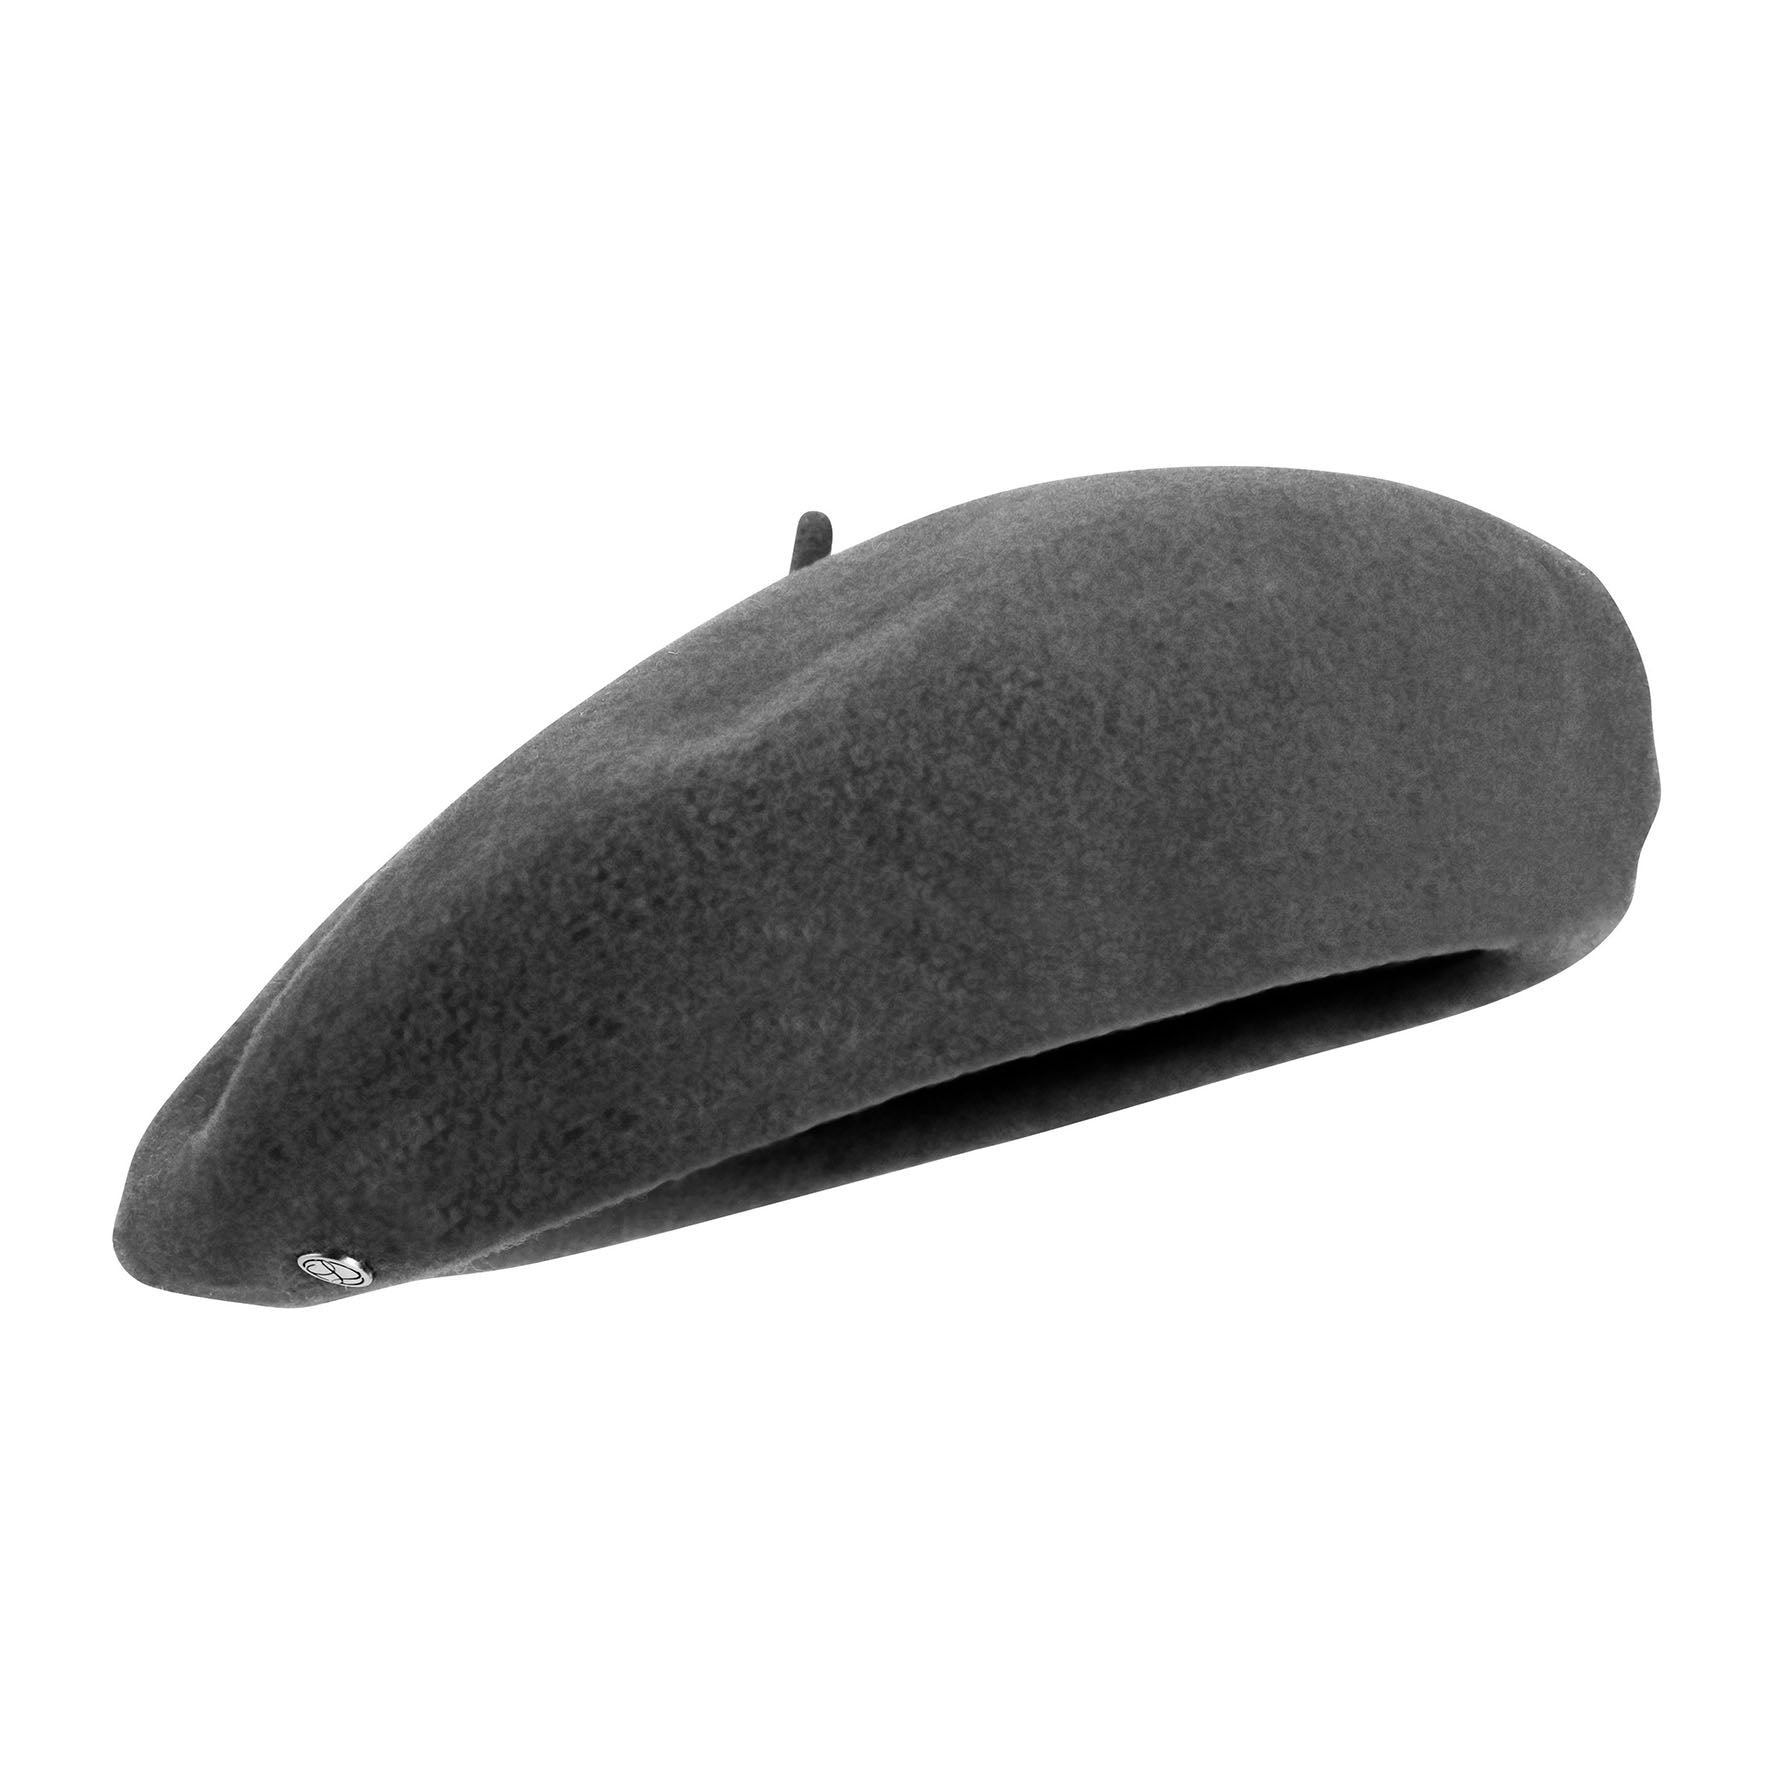 73e71b5d23351 Heritage by Laulhere - Authentique Lined French Beret with Box - The ...